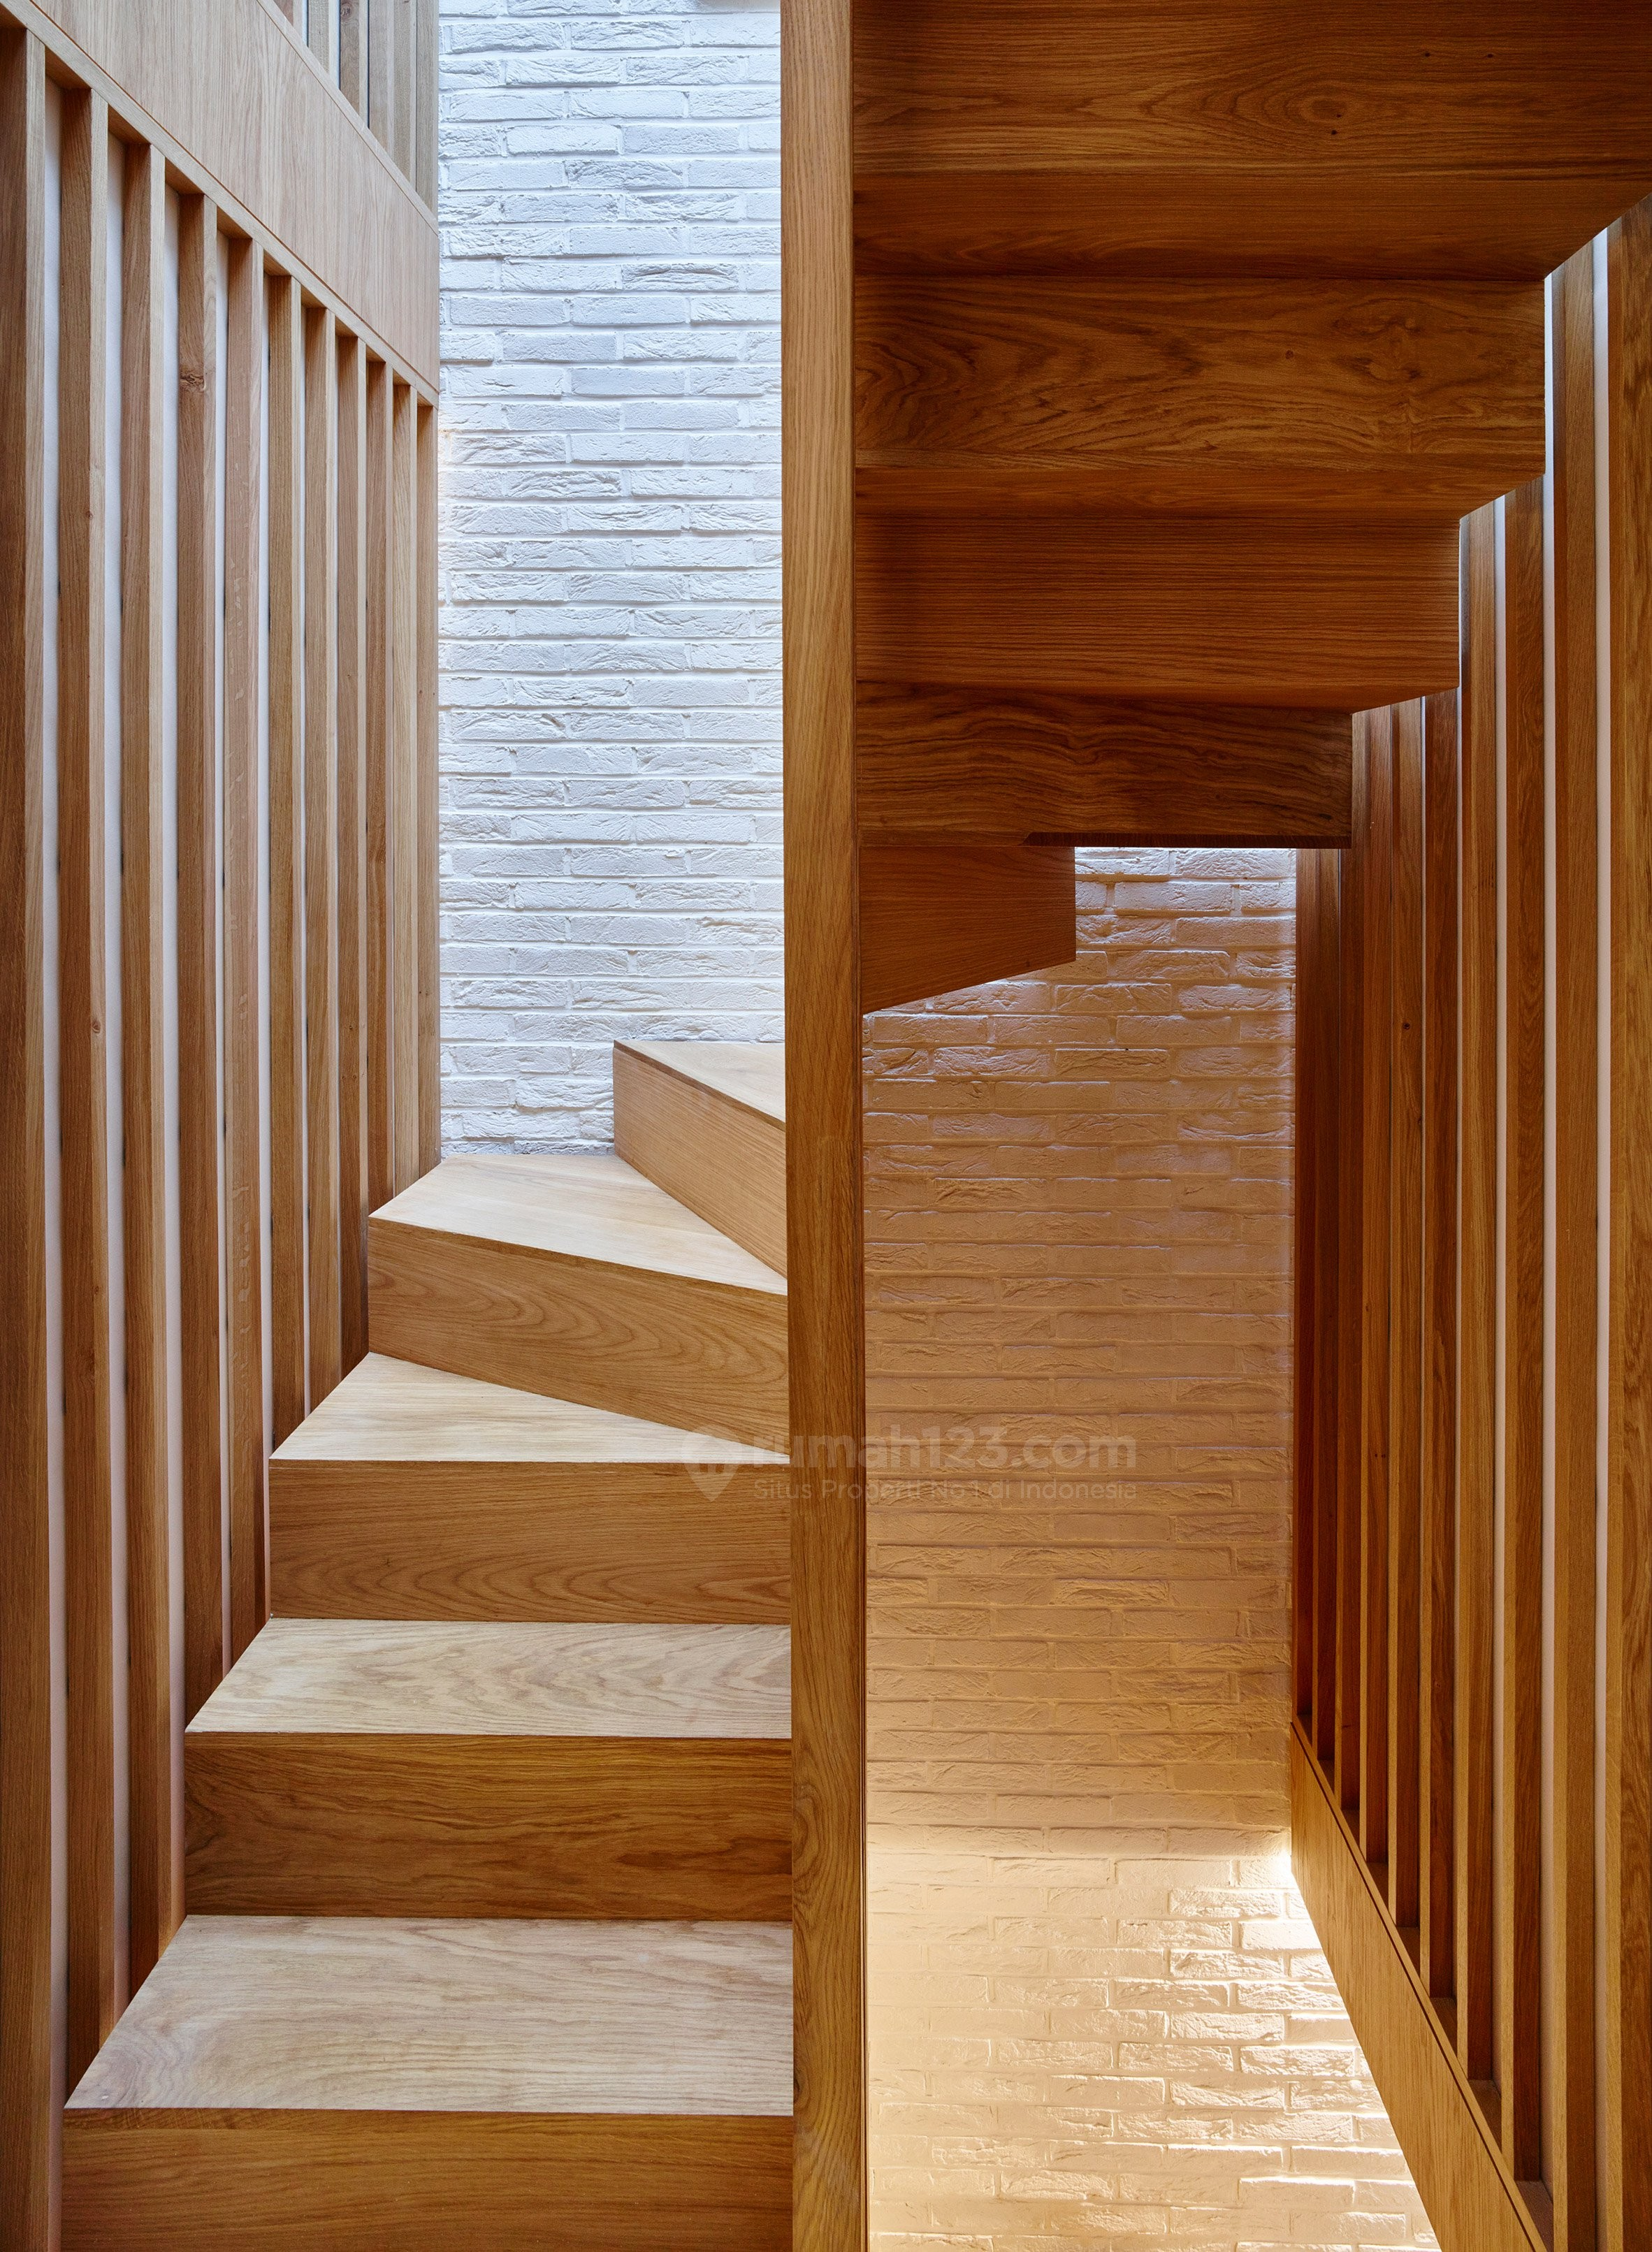 coffey-architects-stairs-2